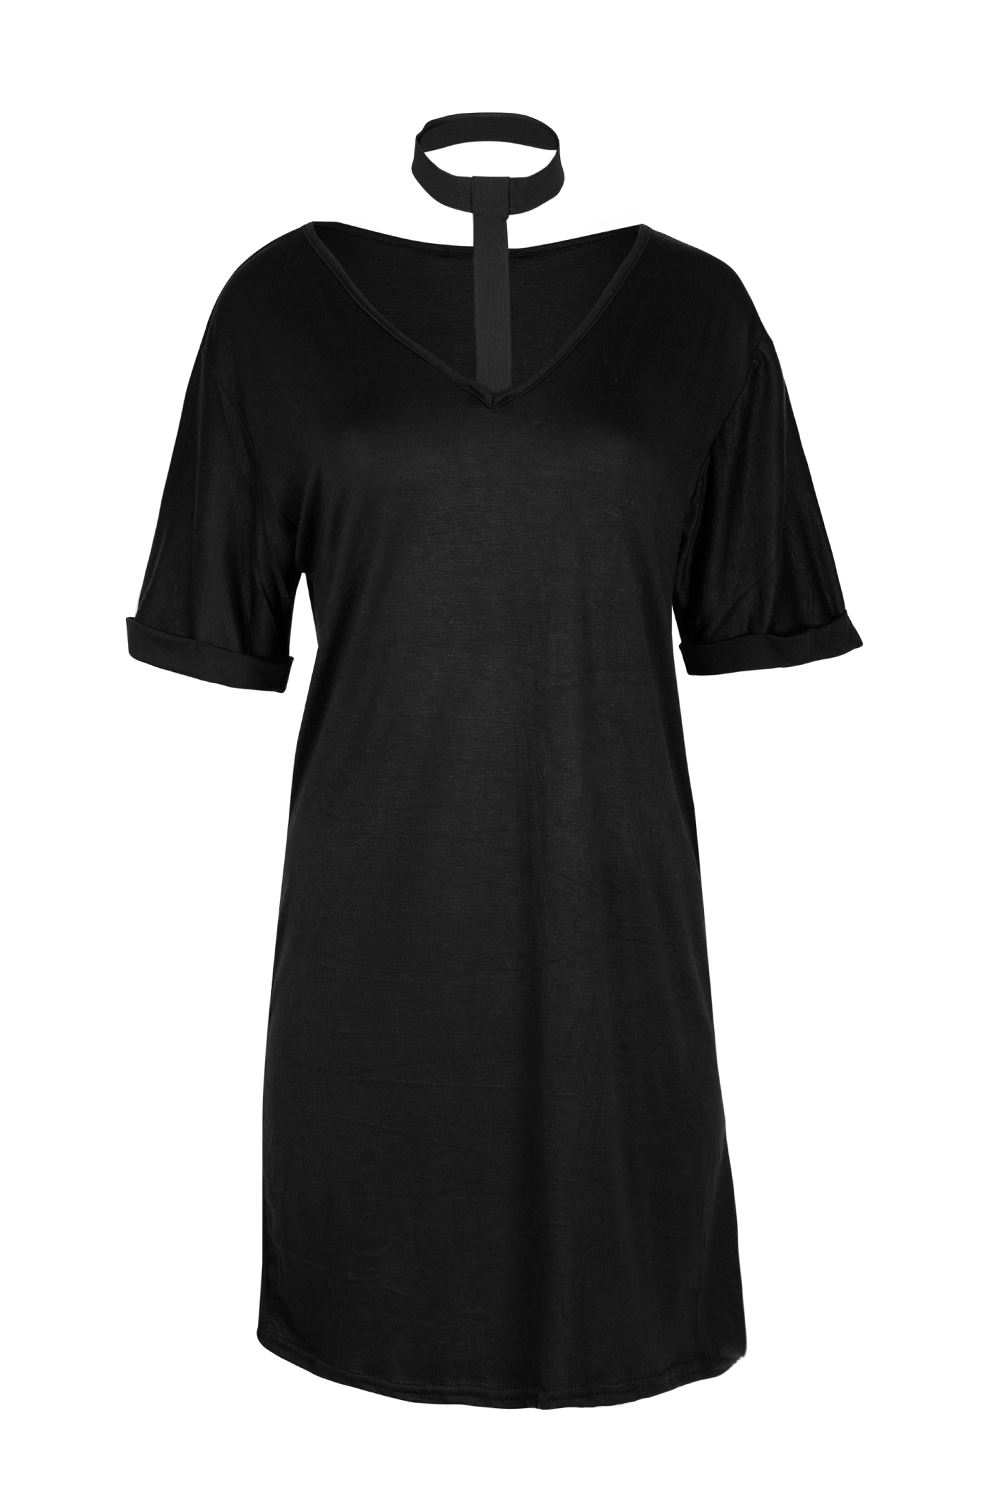 Black t shirt dress ebay - Women Ladies Choker V Neck Turn Up Sleeve